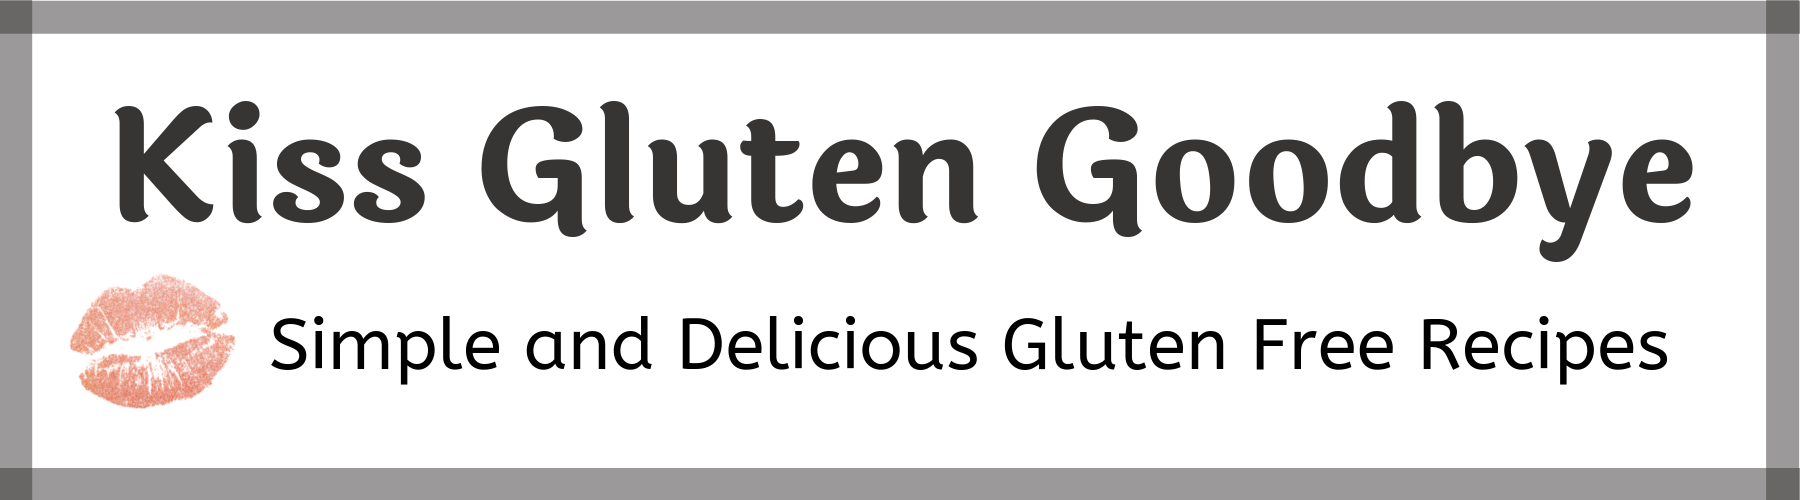 Kiss Gluten Goodbye